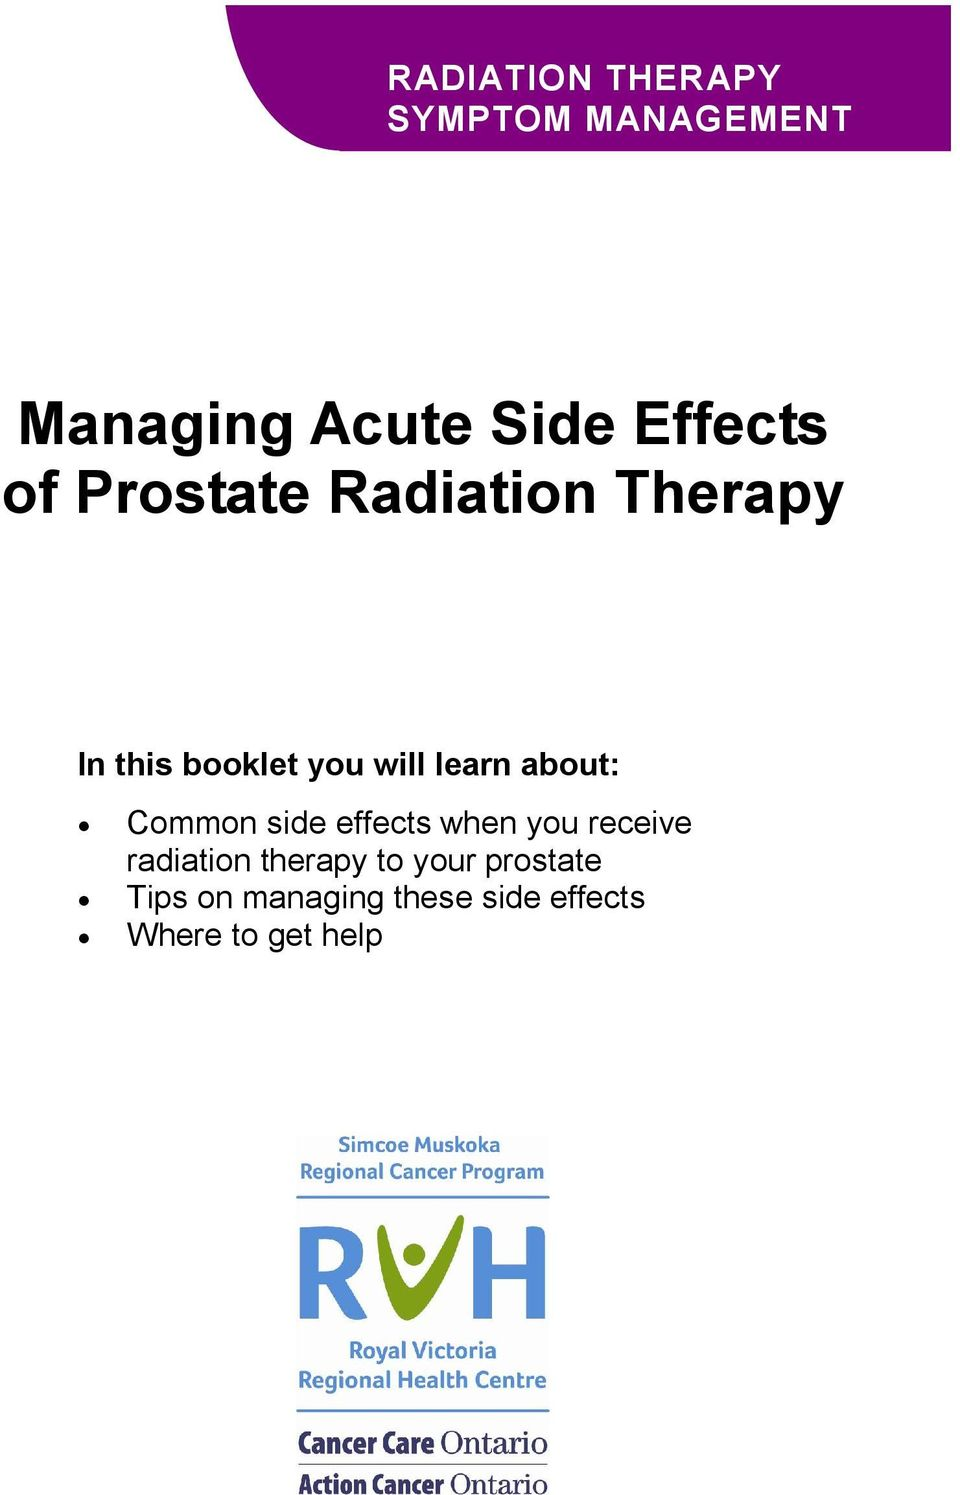 about: Common side effects when you receive radiation therapy to